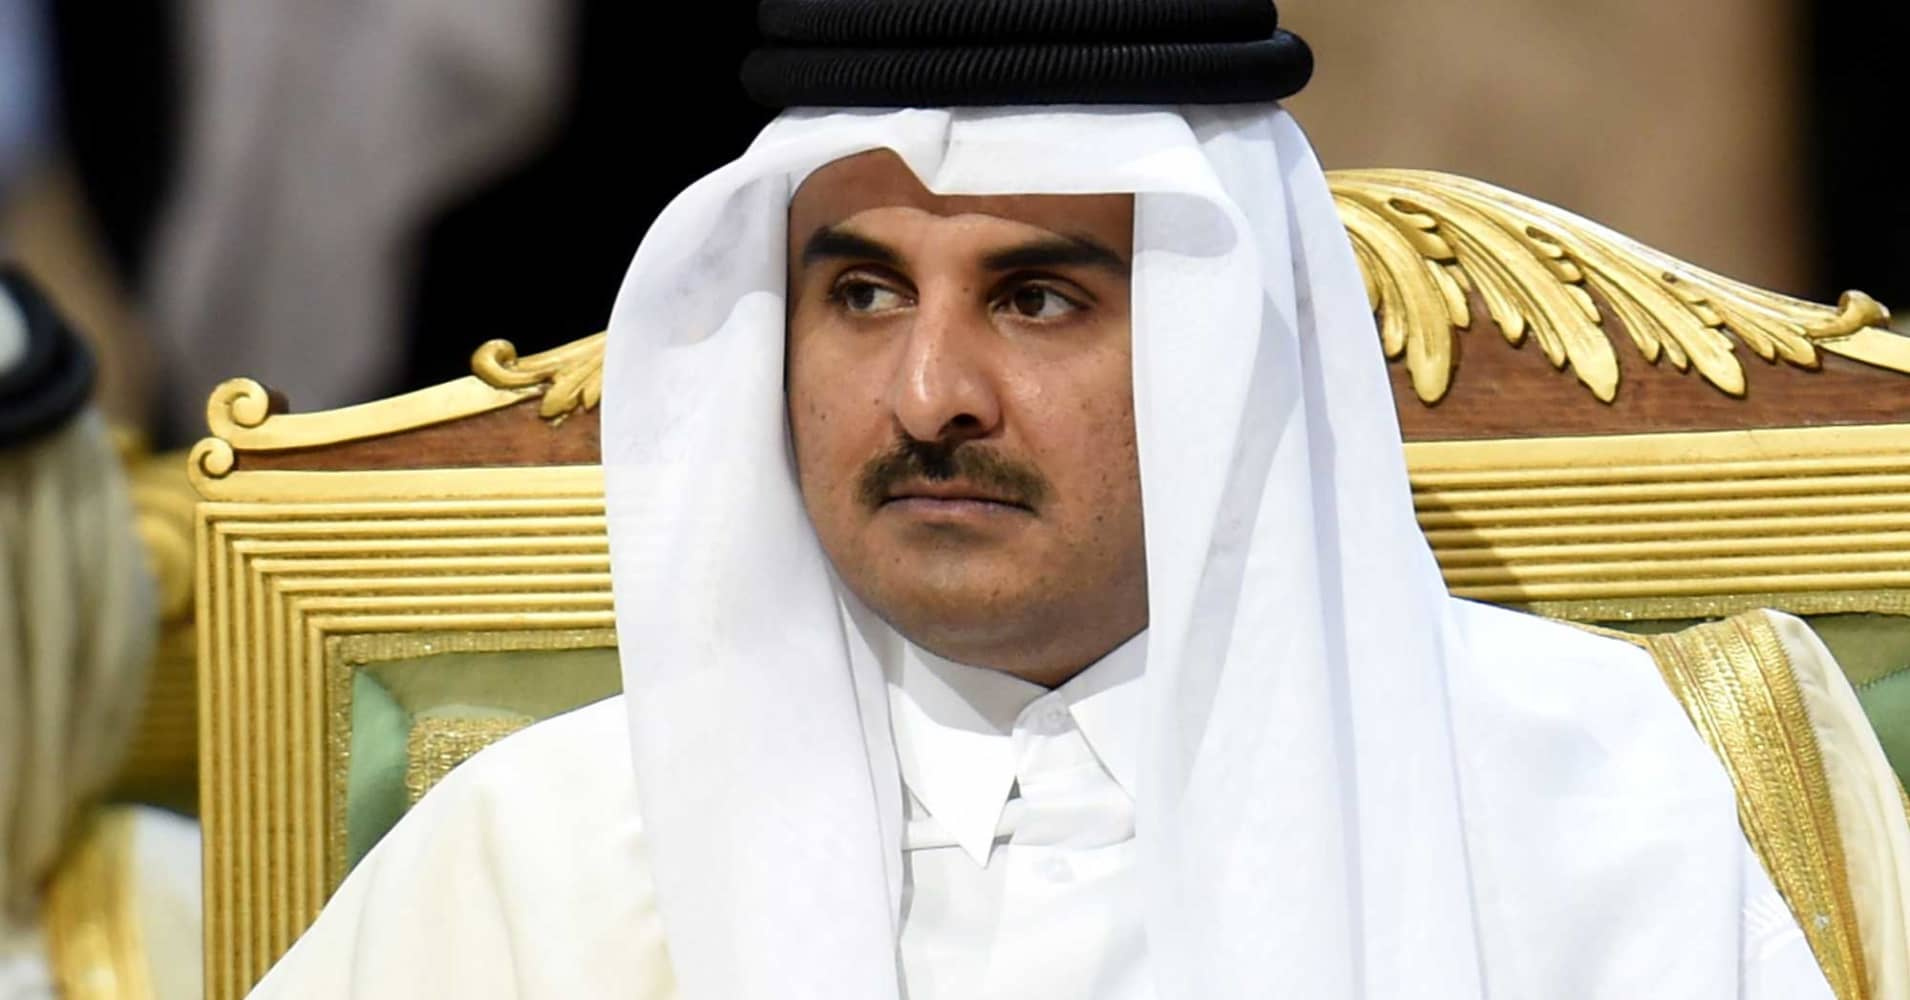 Kuwait hands Qatar a list of demands to resolve diplomatic dispute